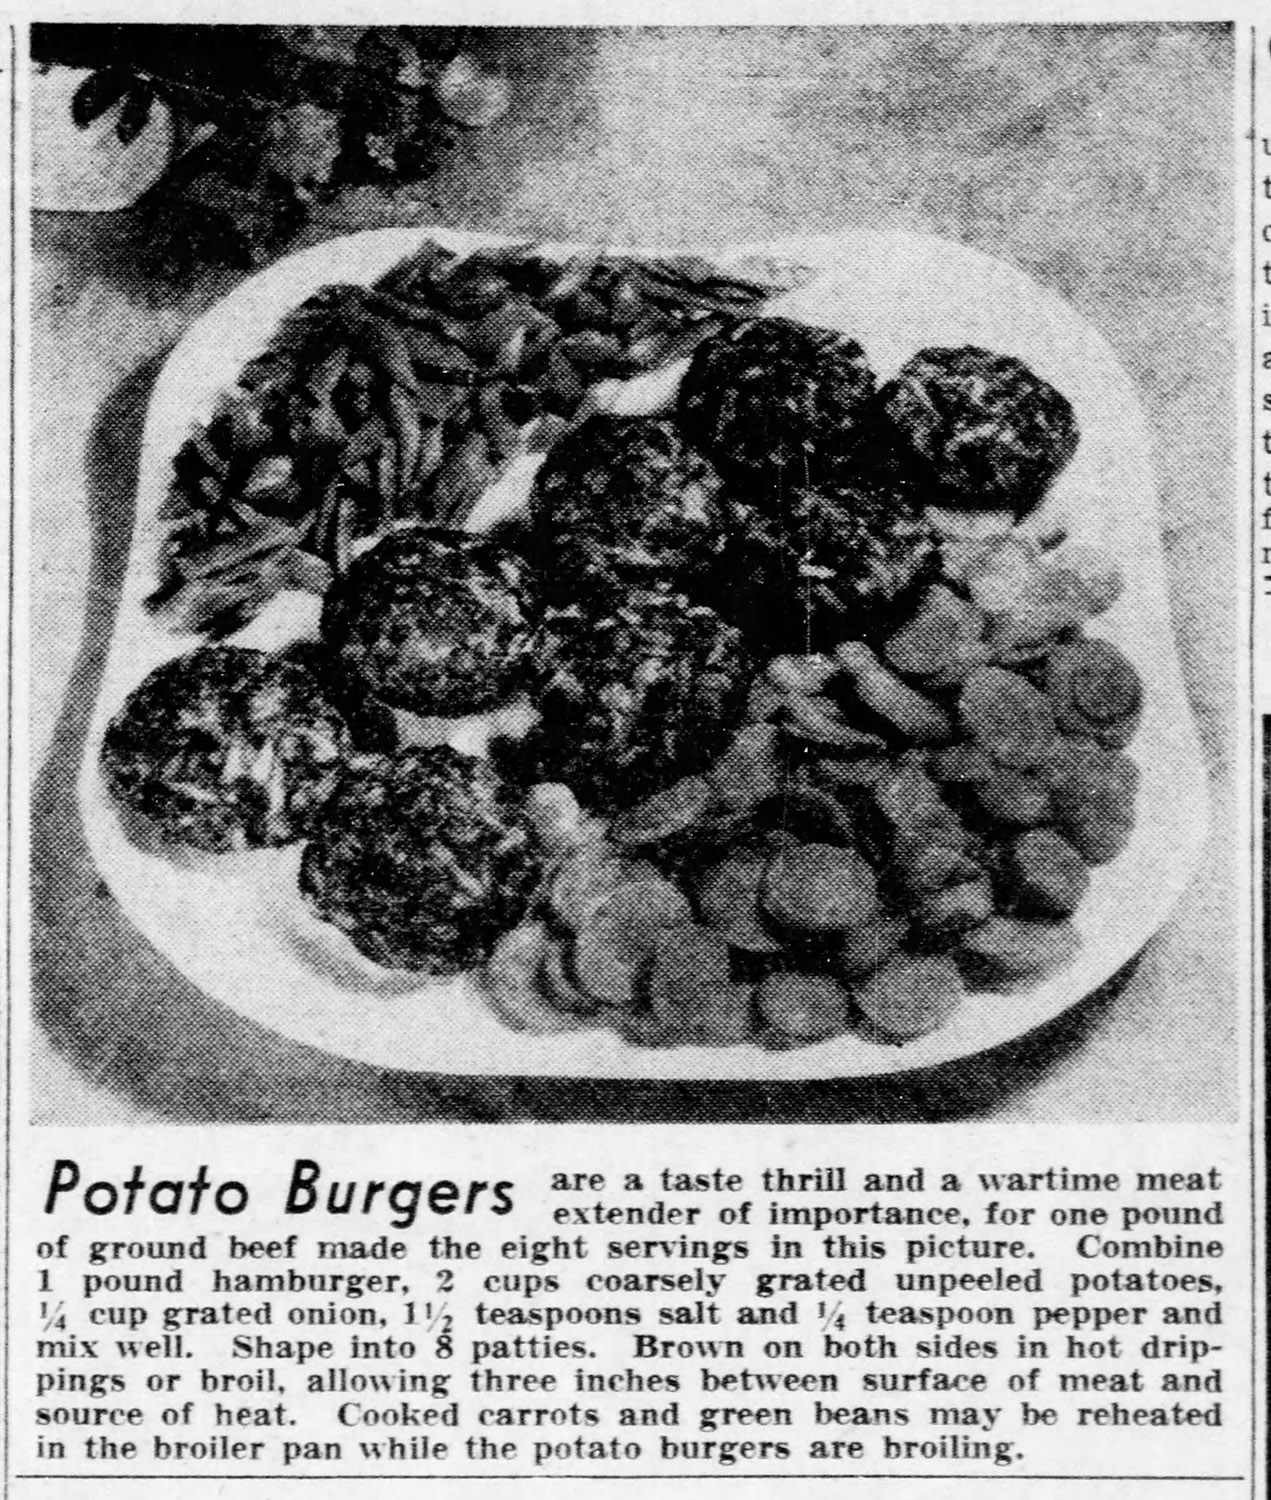 Recipe for meat-extending Potato Burgers, 1944.